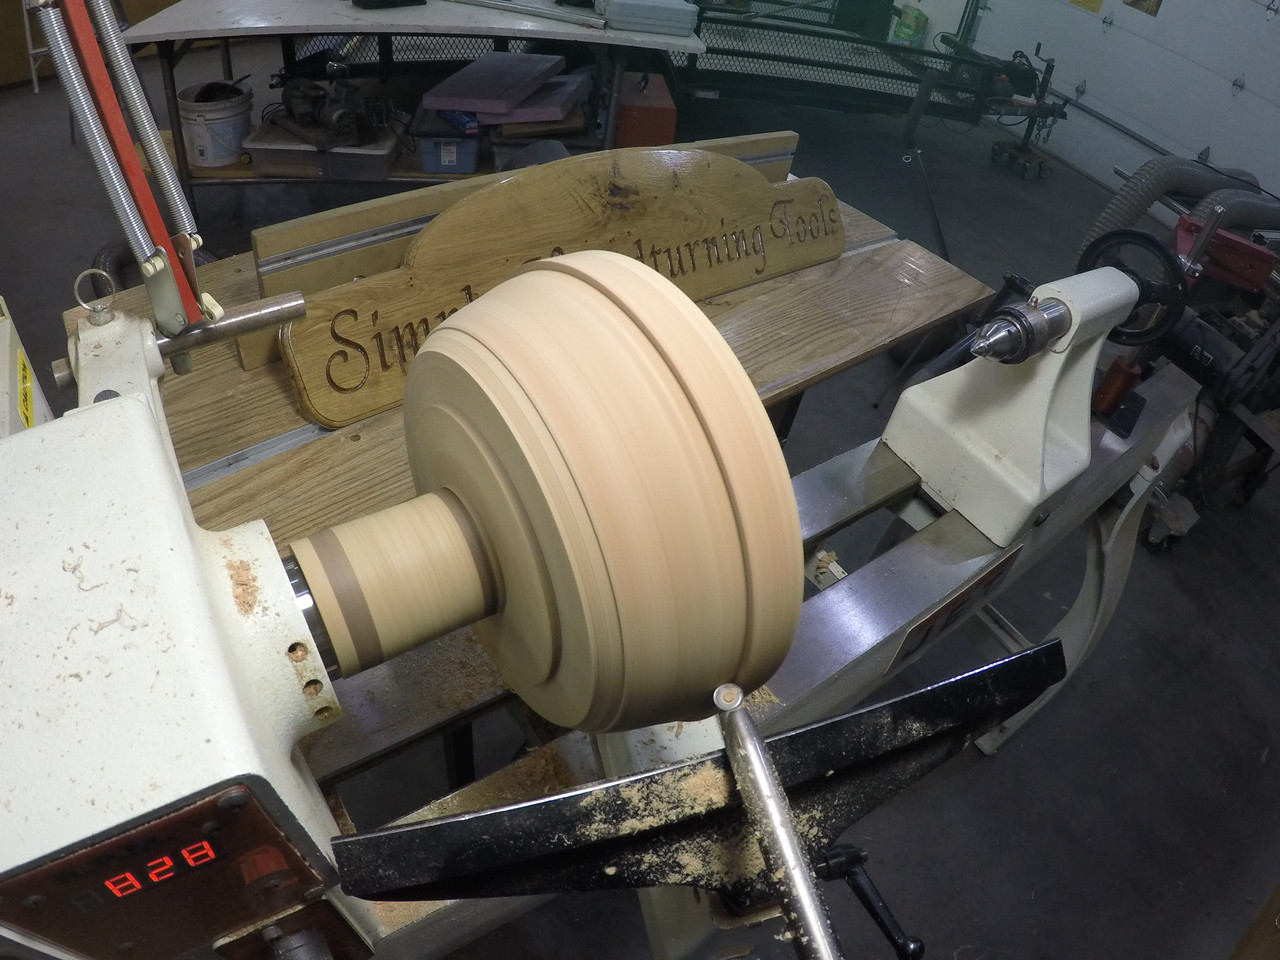 The Simple Shear Cutting Finisher gives the very best surface finish of any woodturning lathe tools. The reason is the shearing cut made by the round saucer shaped carbide cutter.